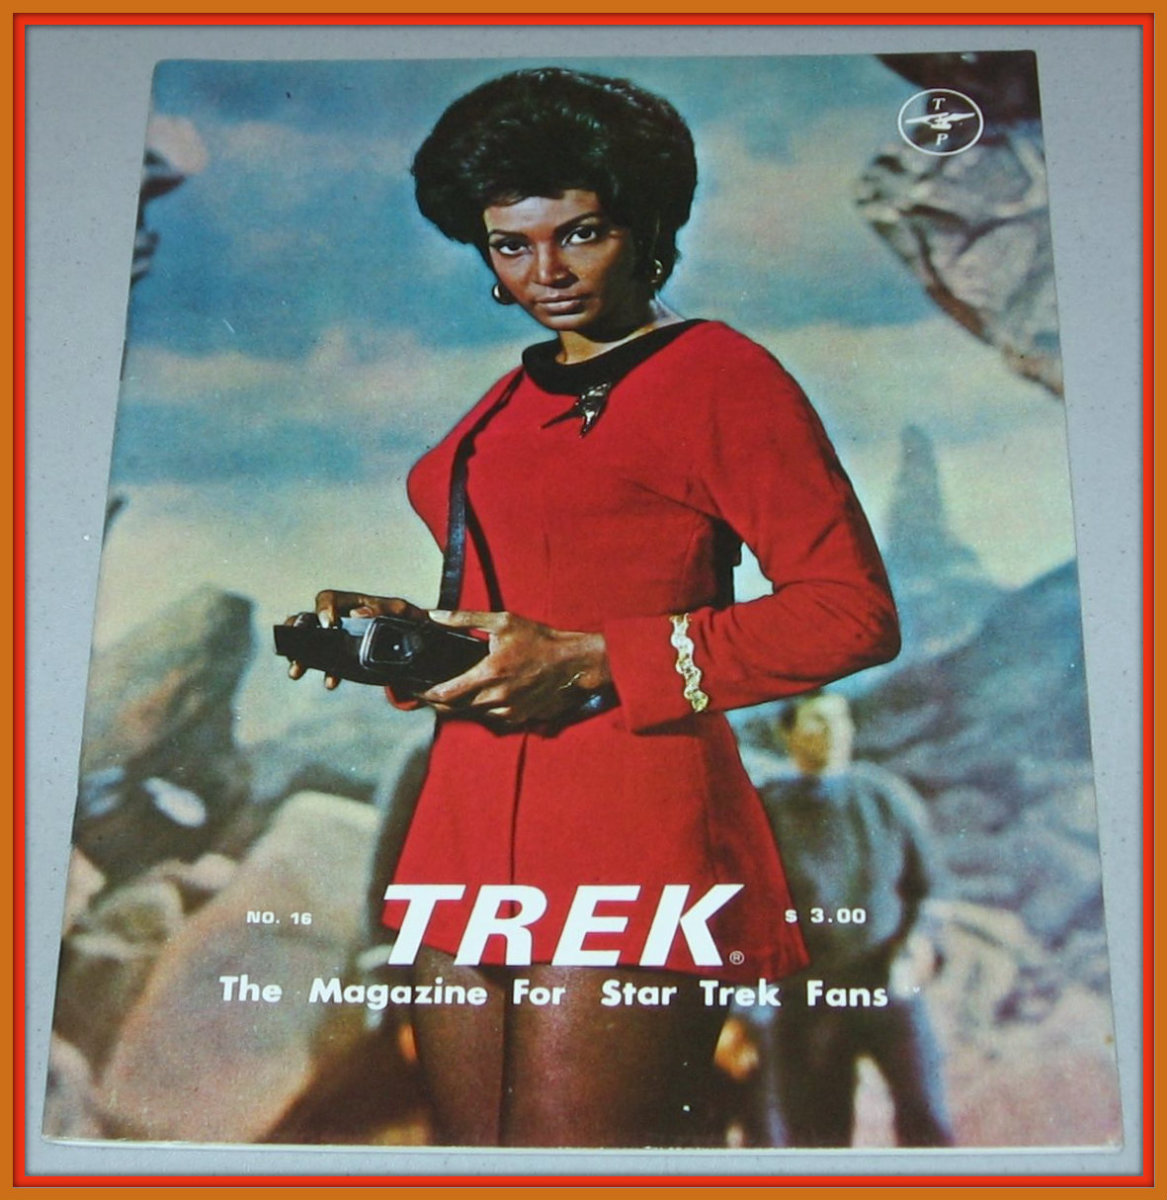 Trek #16, The Magazine for Star Trek Fans with Uhura Cover. This issue is very well done with great artwork and full of nice photos and articles.